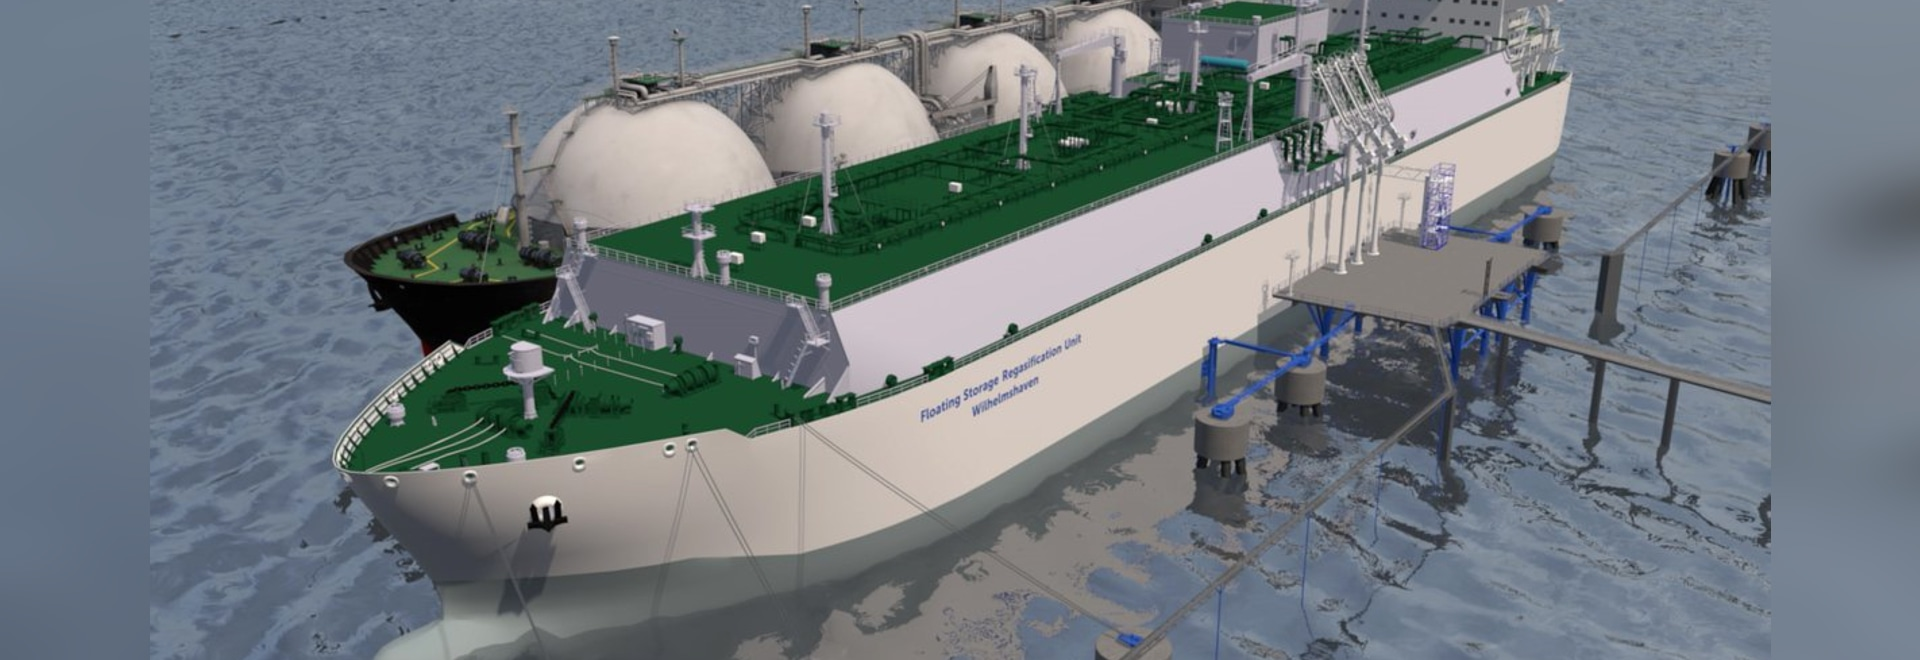 japanese shipowner Mitsui O.S.K Line (MOL) will own, finance and operate the FSRU